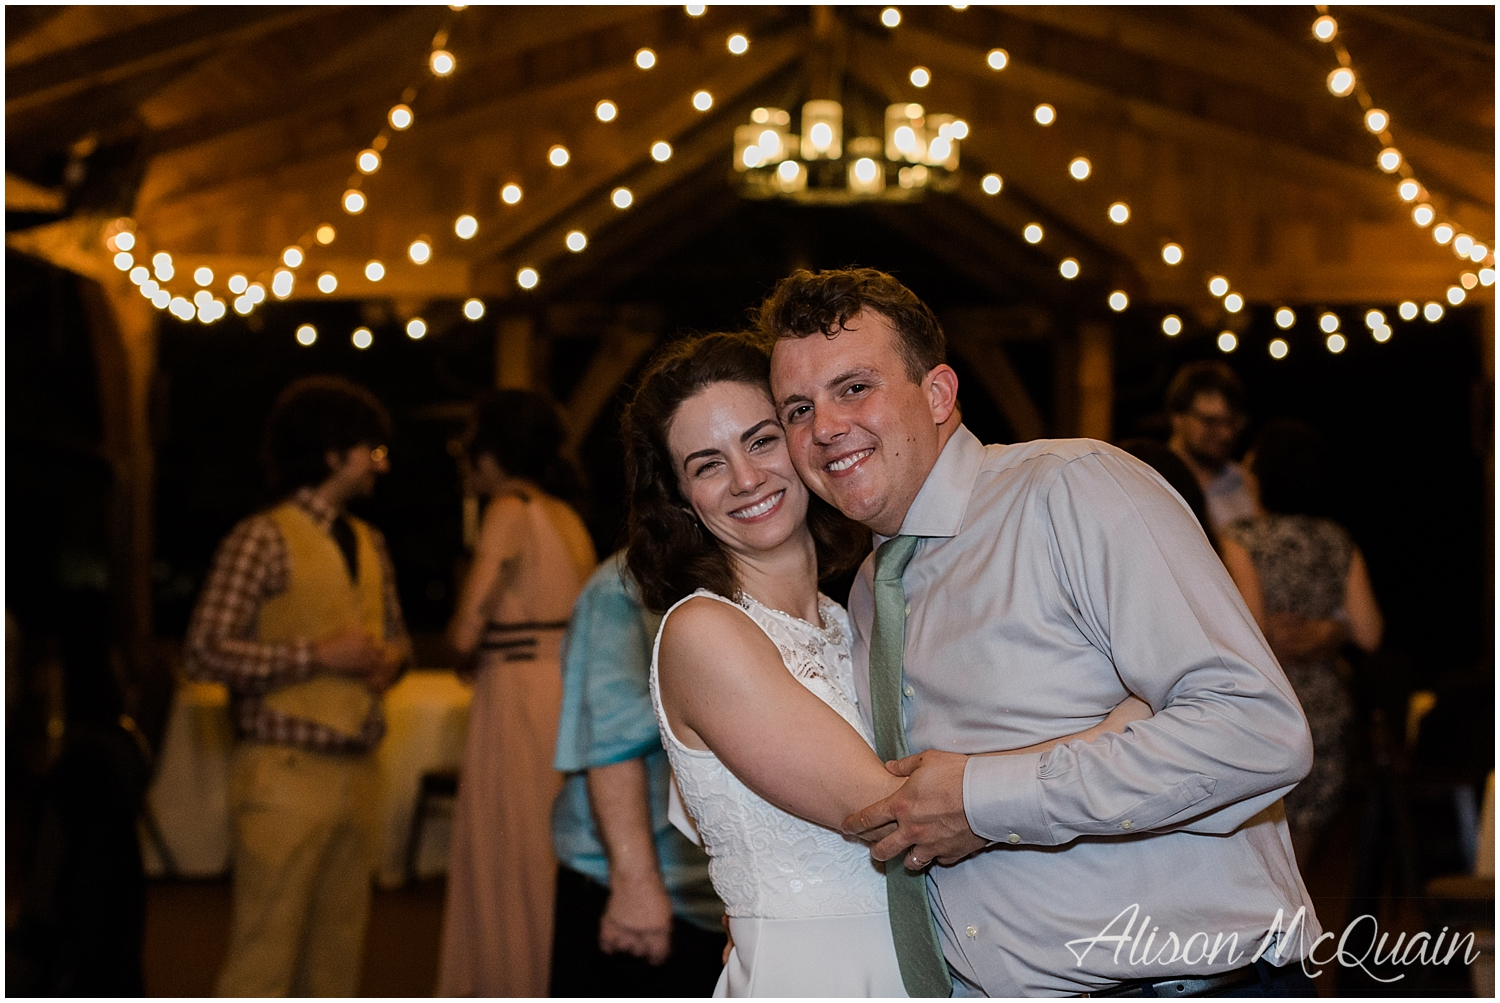 2018-05-23_0052LandC_wedding_dancingbearlodge_townsend_tn_amp.jpg